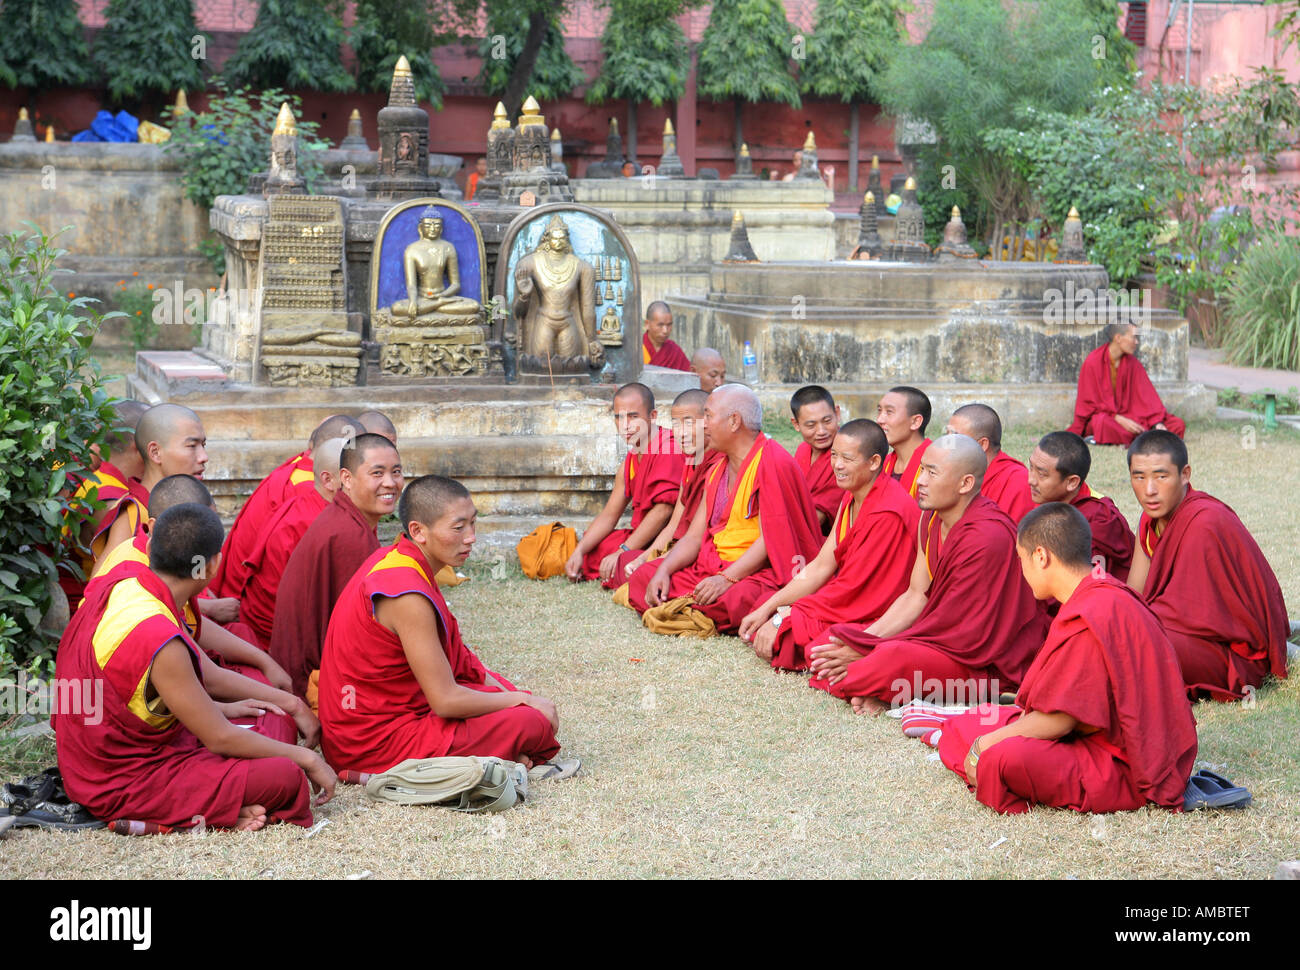 India, Bodhgaya: buddhist monks praying in the garden of Mahabodhi Temple, the place of the Buddha's Enlightenment - Stock Image